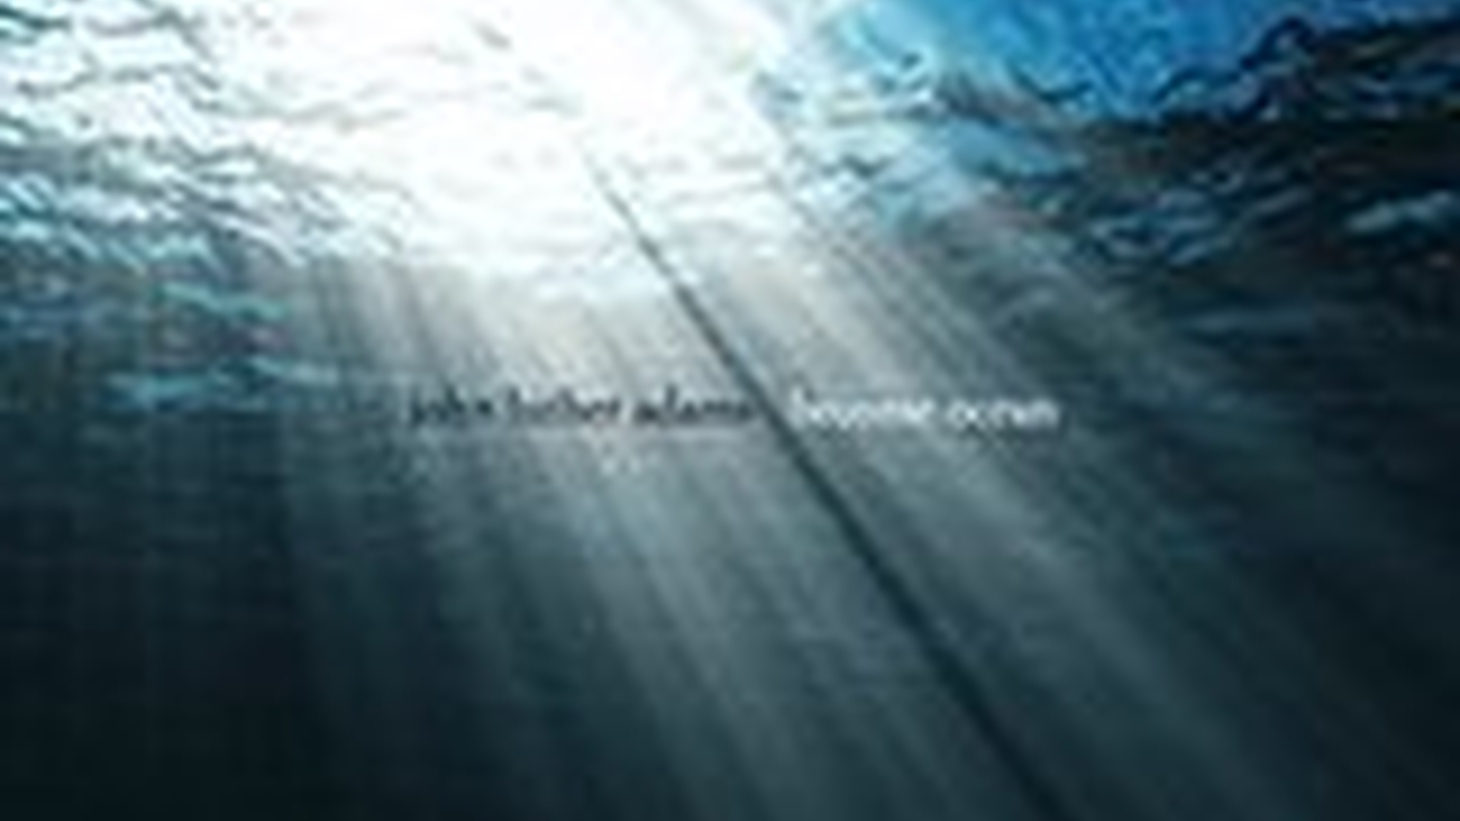 Rhythm Planet features music that reflects the beauty of water and the oceans.